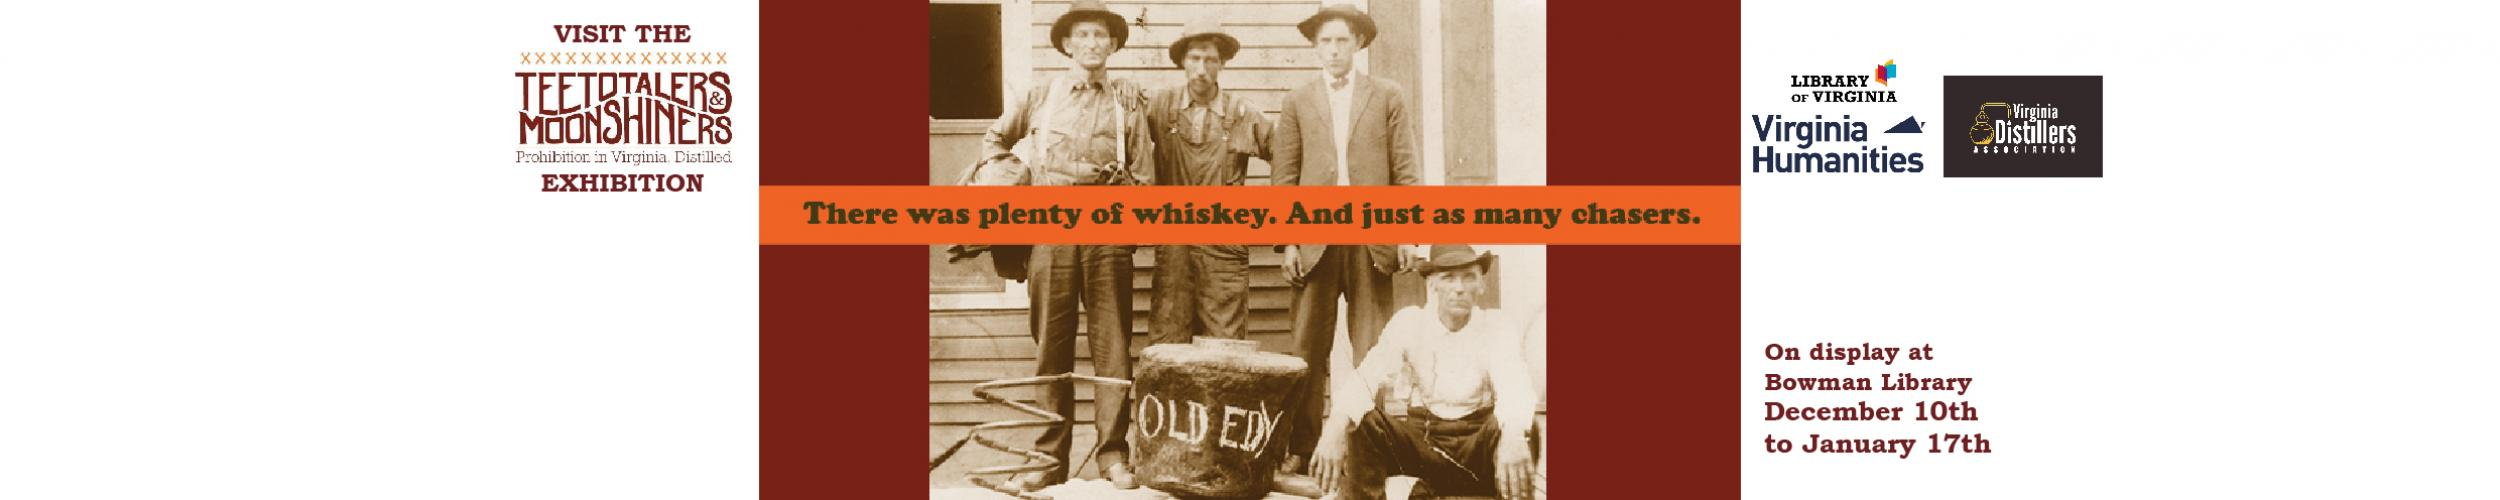 Teetotalers and Moonshiners Traveling Exhibit Web Banner